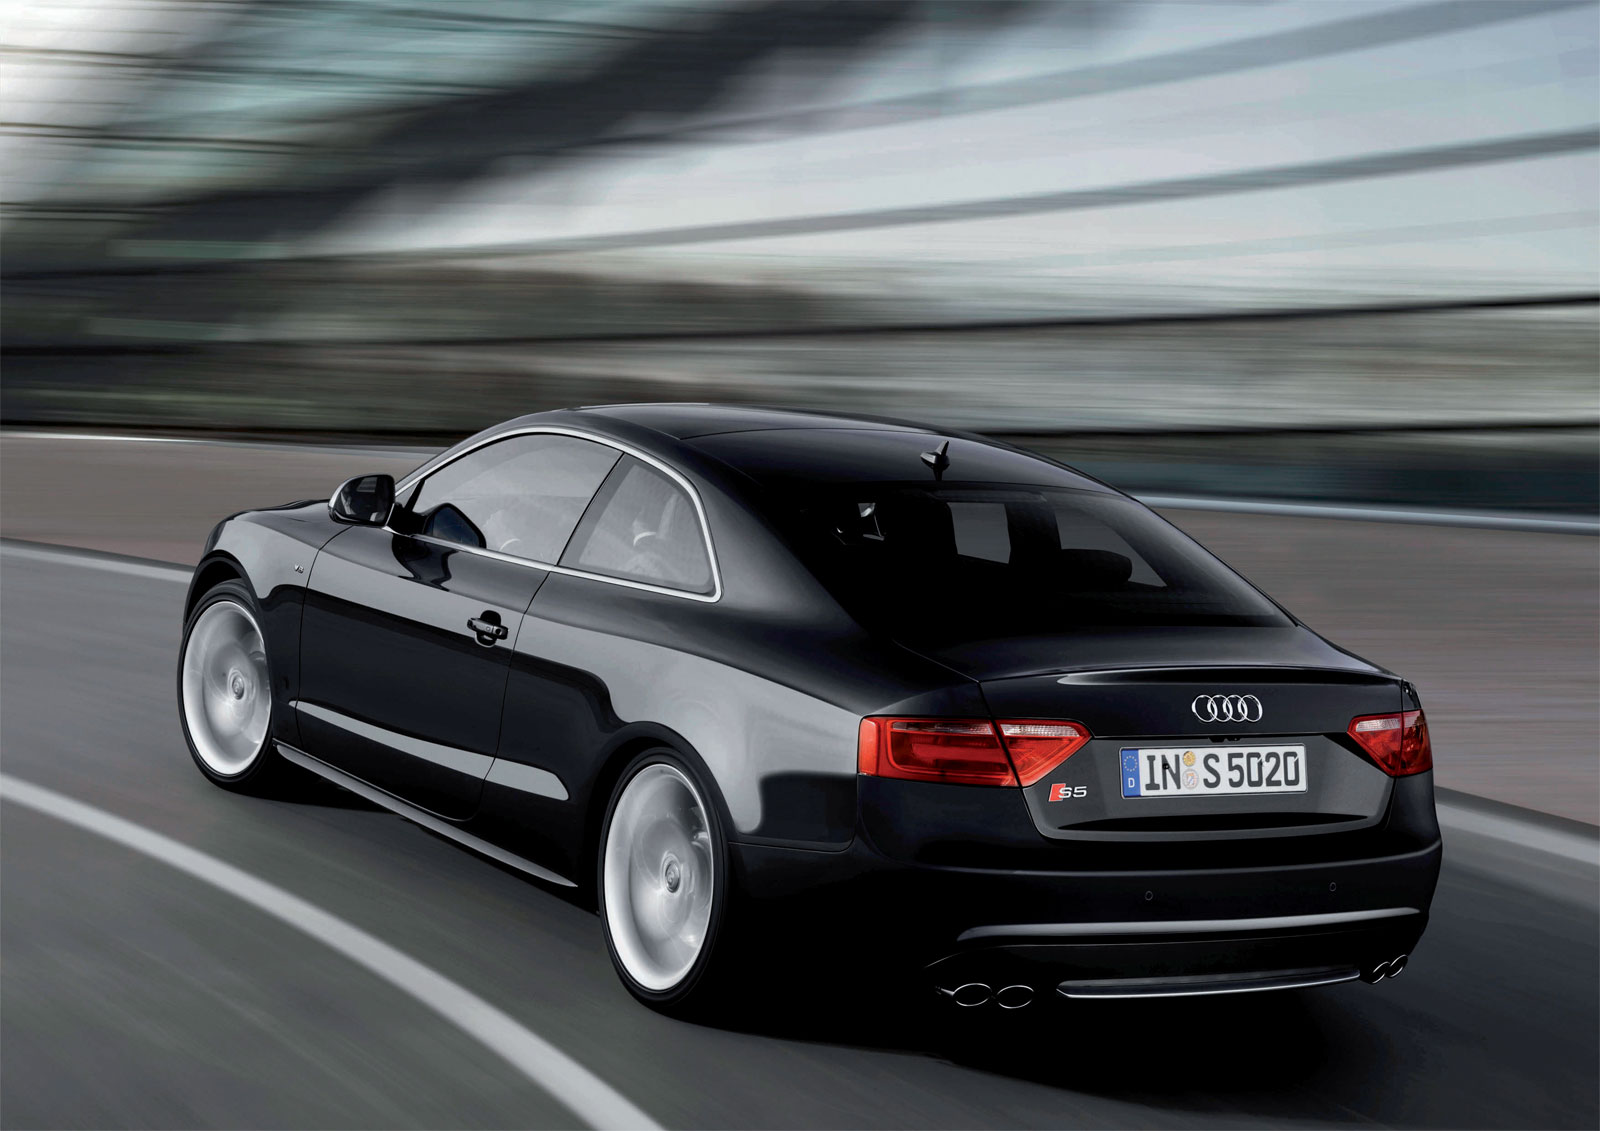 Audi S5 HD WallPaperS Best High Quality Car Desktop Wallpapers in HD 1600x1131